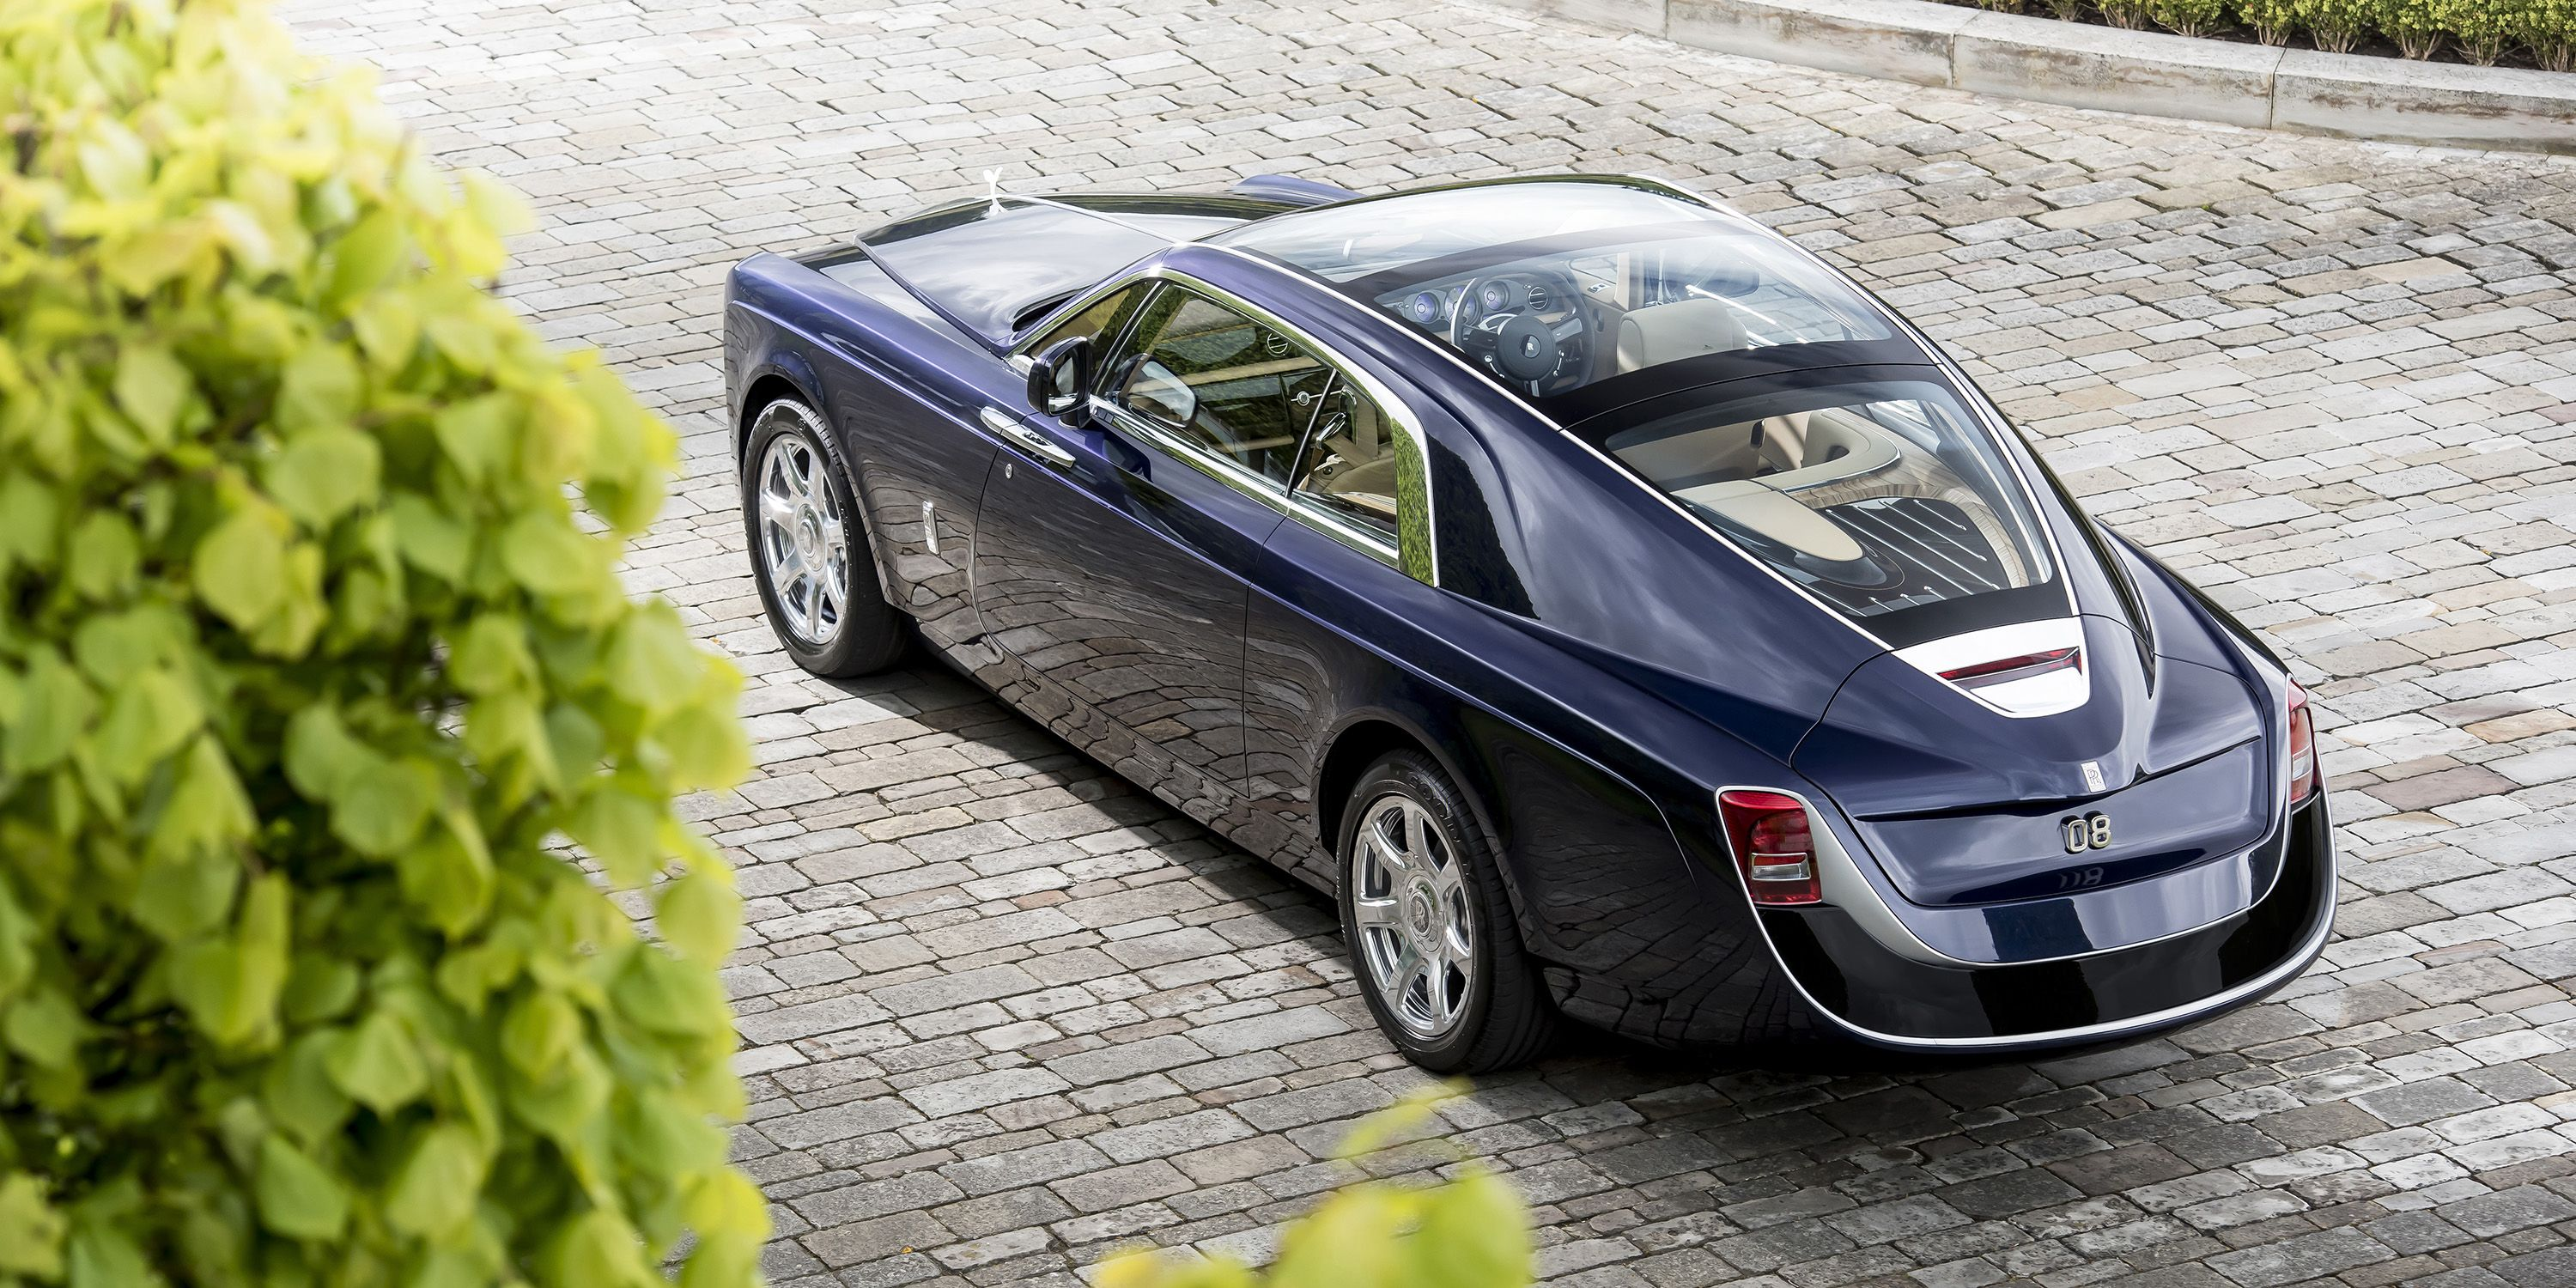 Take A Look At The World's Most Expensive Car That Even Billionaires Can't Buy! 3